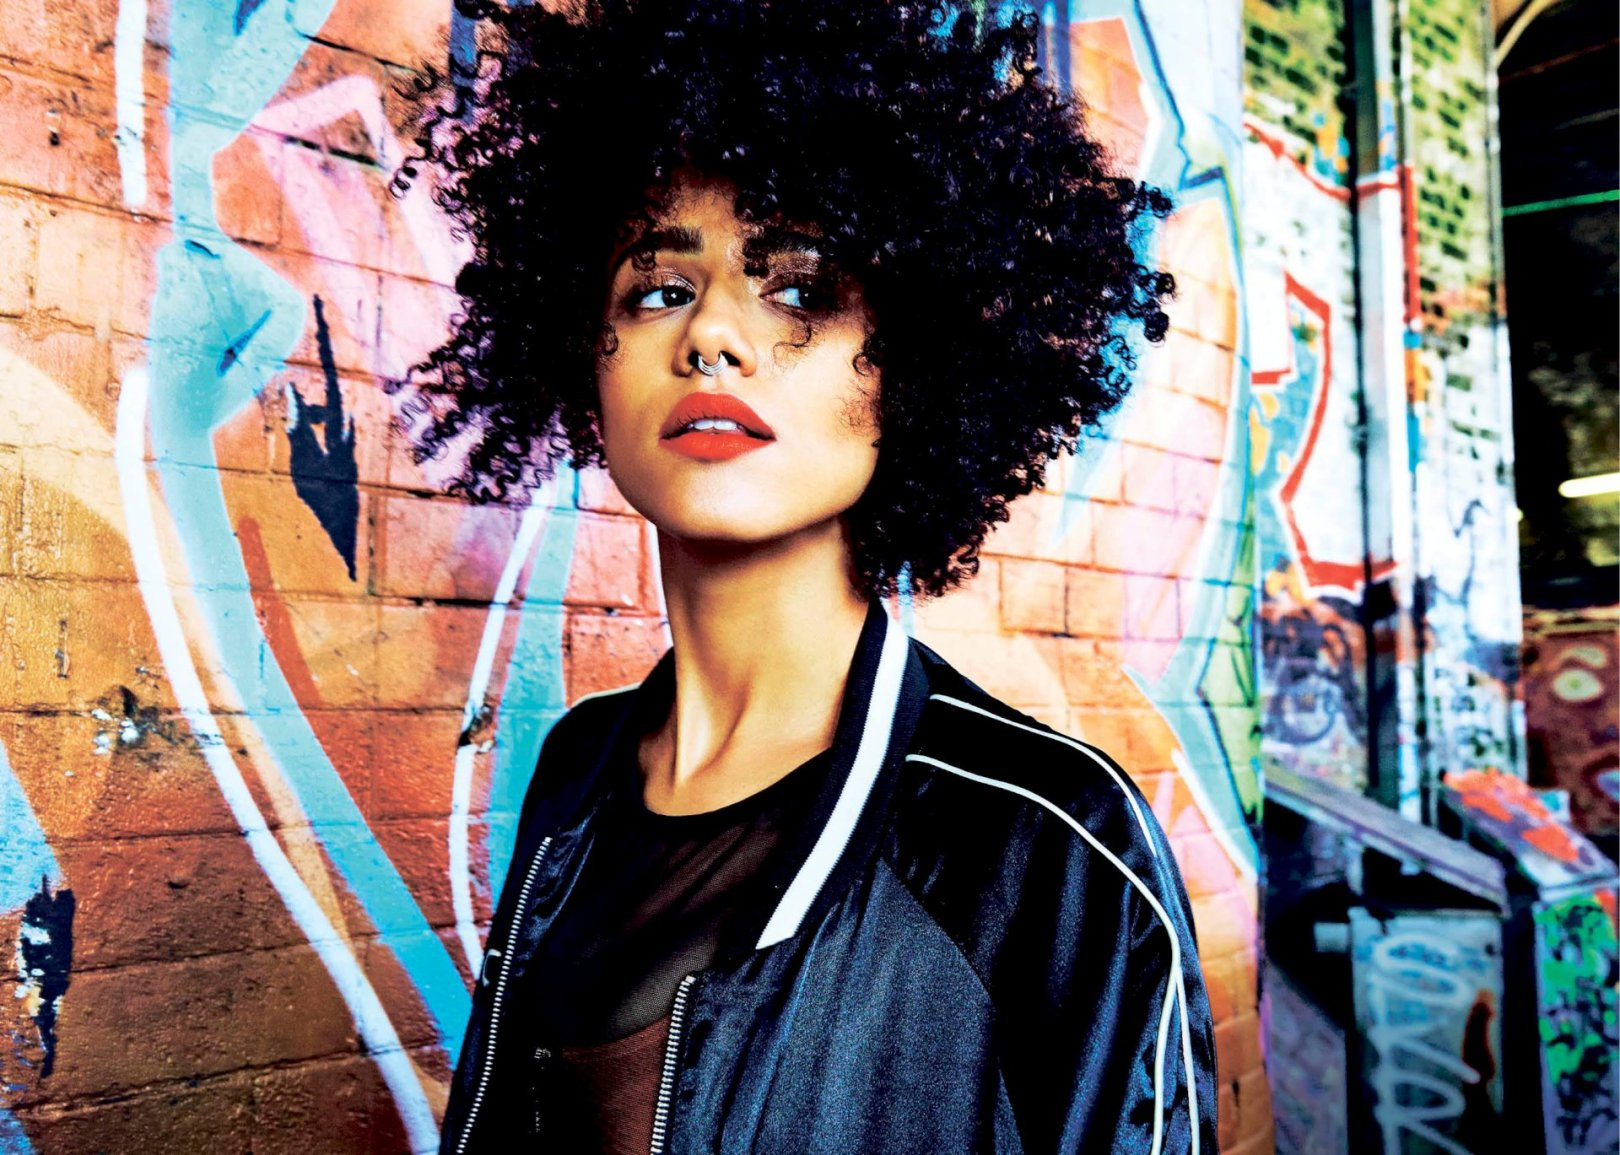 nathalie emmanuel goes urban chic for fabulous magazine - flavourmag